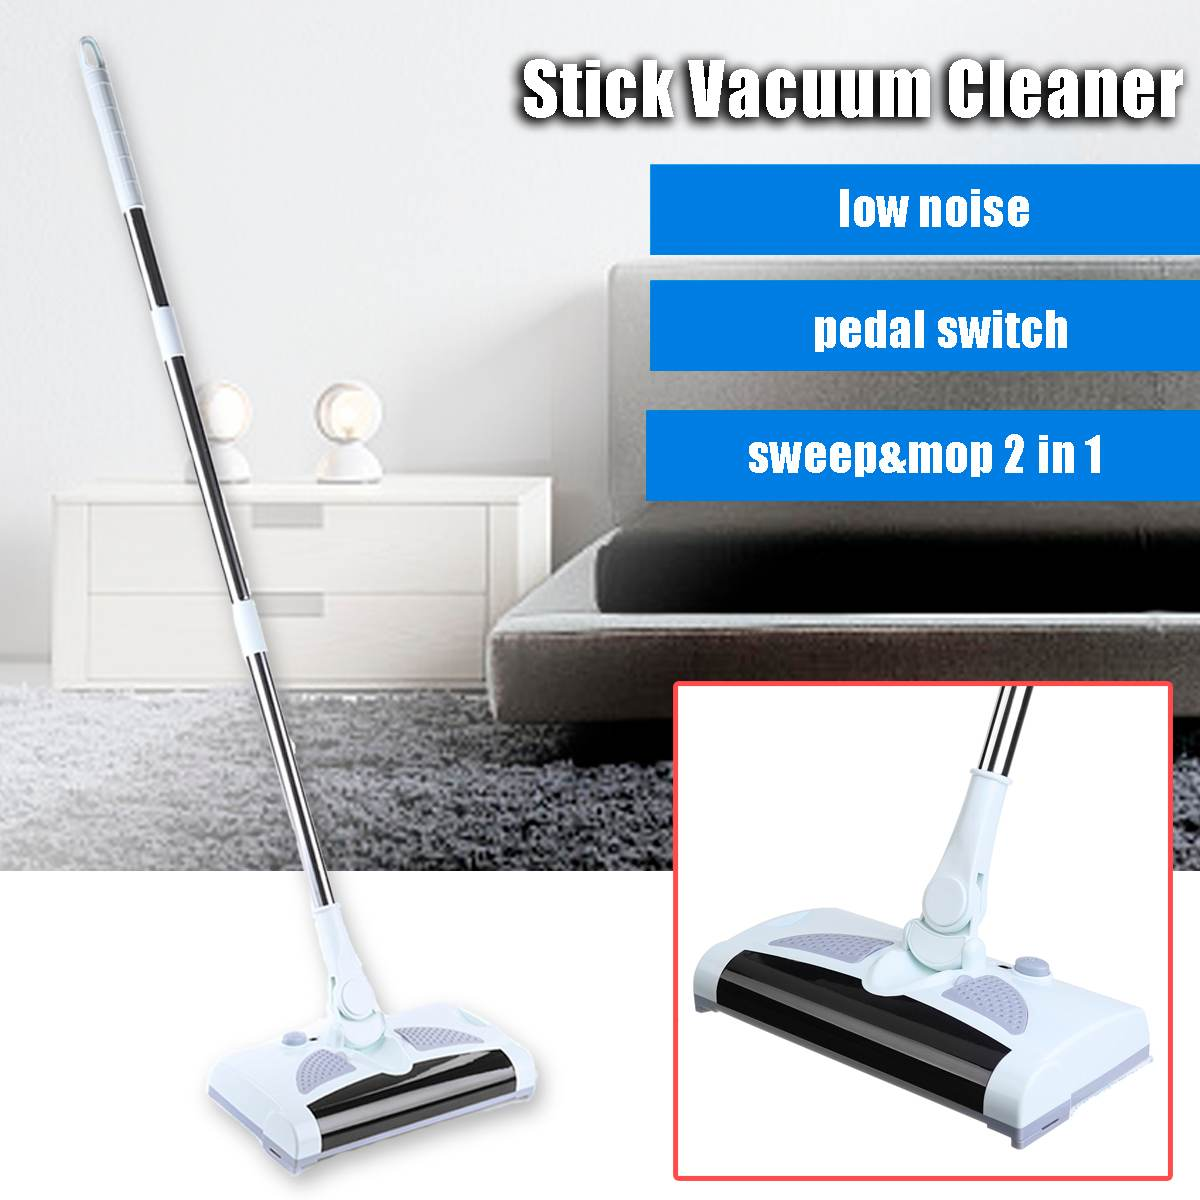 Warmtoo 220V EU Plug Two-In-One Wireless Rechargeable Stick Vacuum Cleaners Handheld Portable Cordless Sweep Clean MachineWarmtoo 220V EU Plug Two-In-One Wireless Rechargeable Stick Vacuum Cleaners Handheld Portable Cordless Sweep Clean Machine